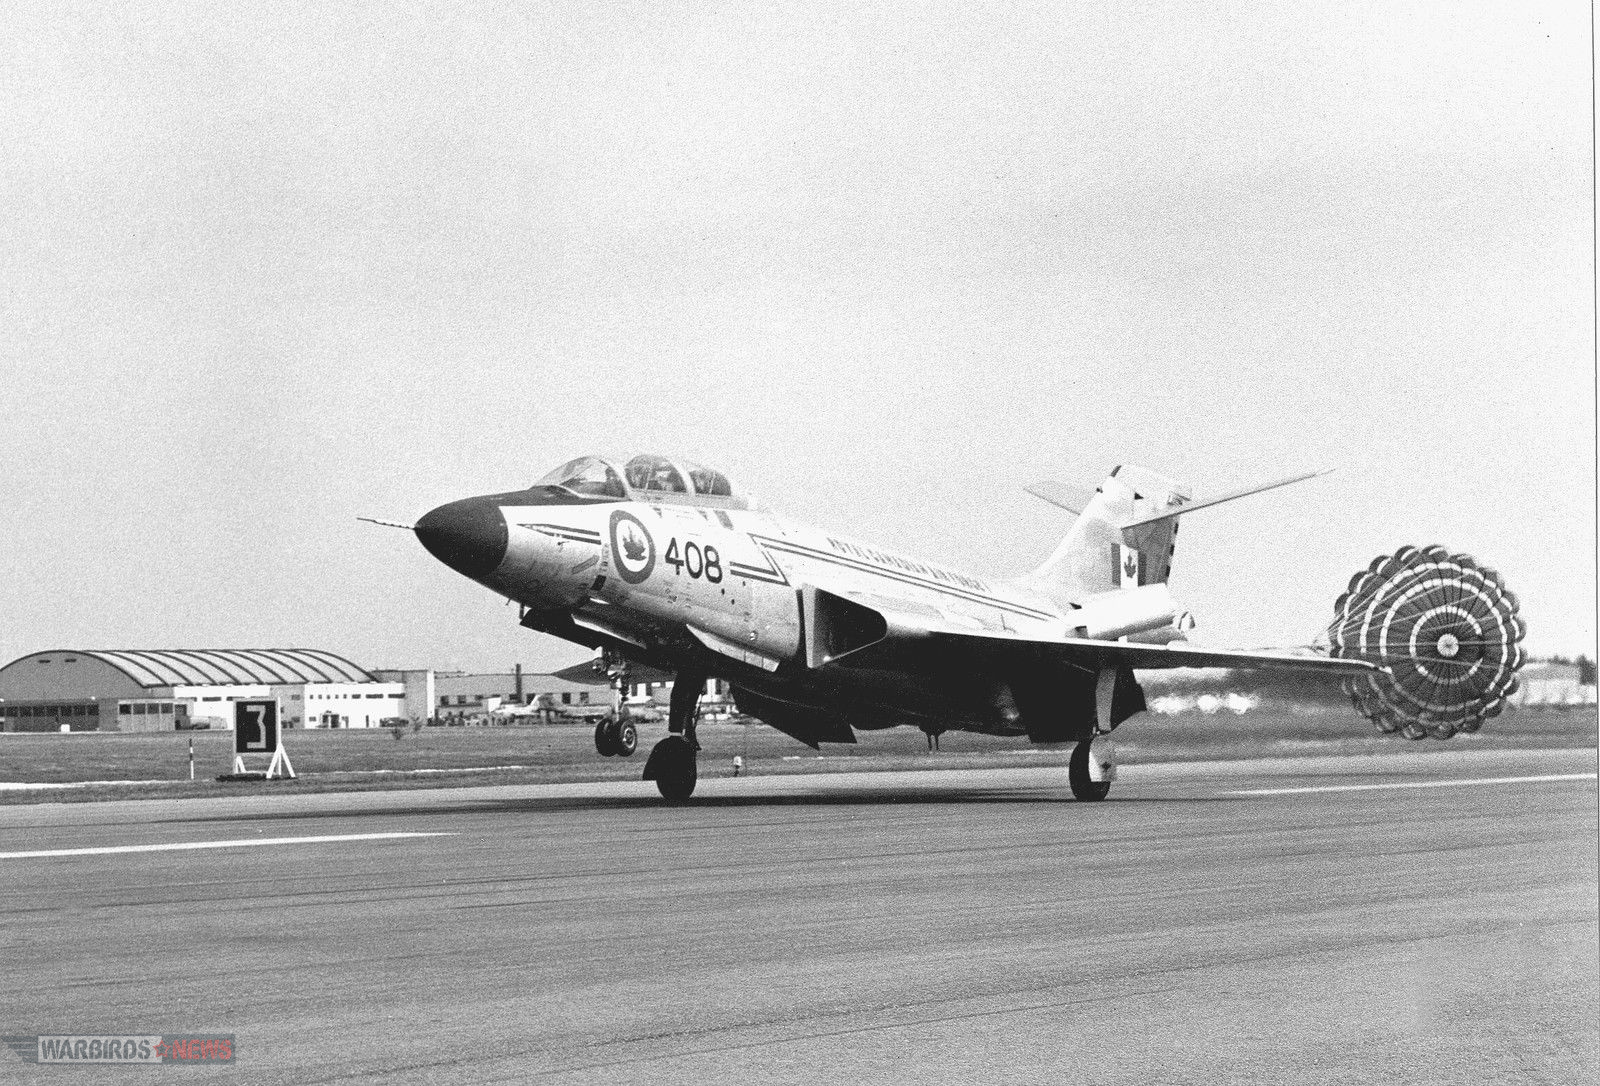 F-101 Voodoo)RObert F. Dorr Collection12